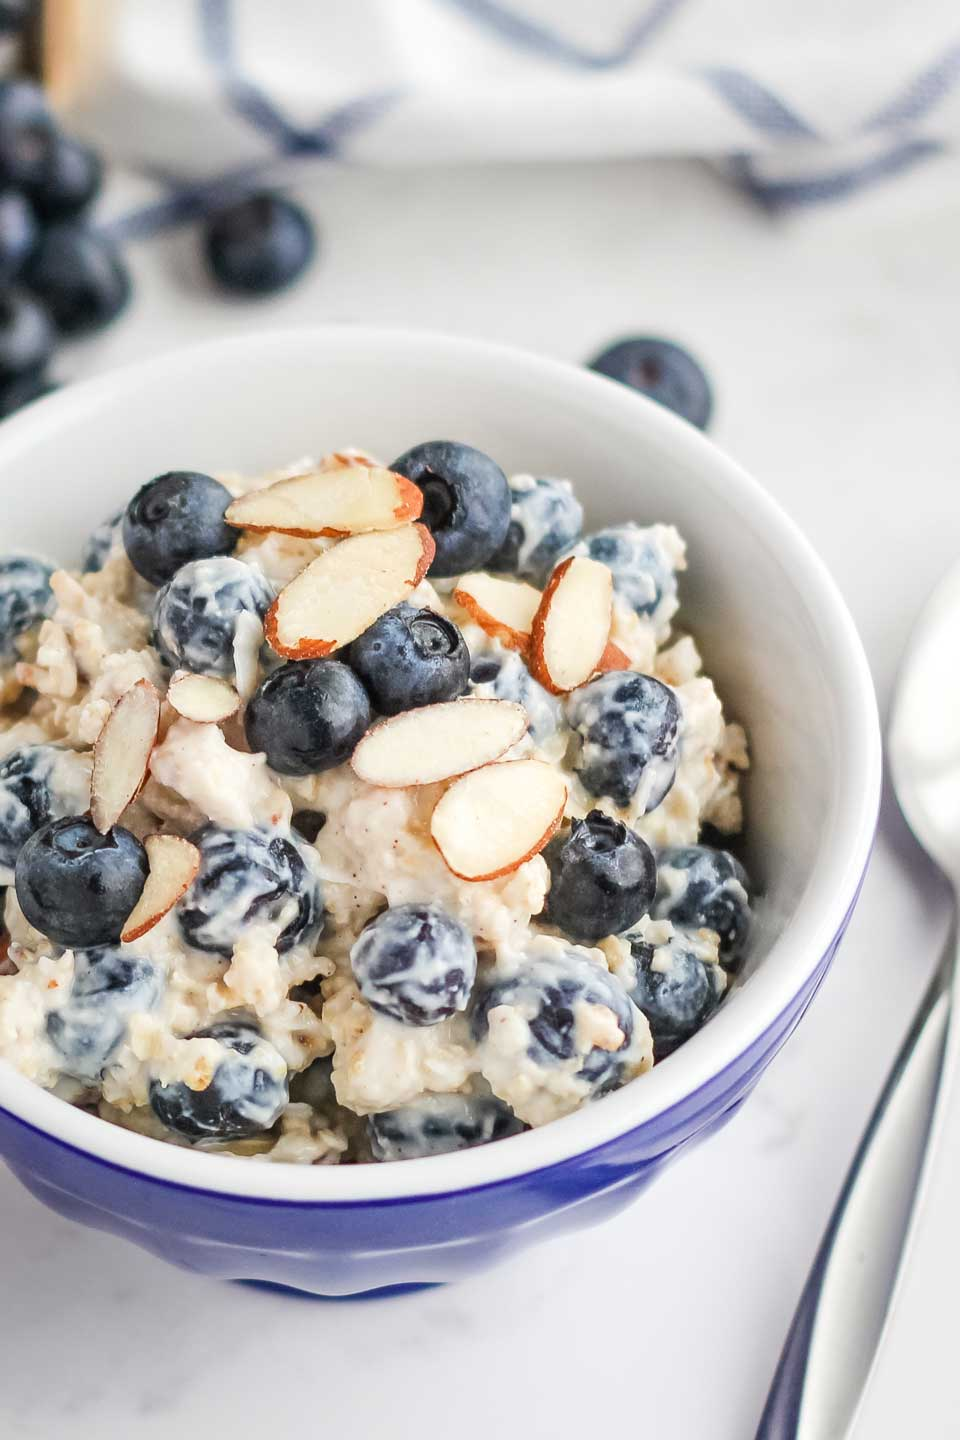 The finished recipe presented in a little blue bowl with a sprinkling of extra blueberries and sliced almonds on top of the cold oats mixture, with a spoon alongside..